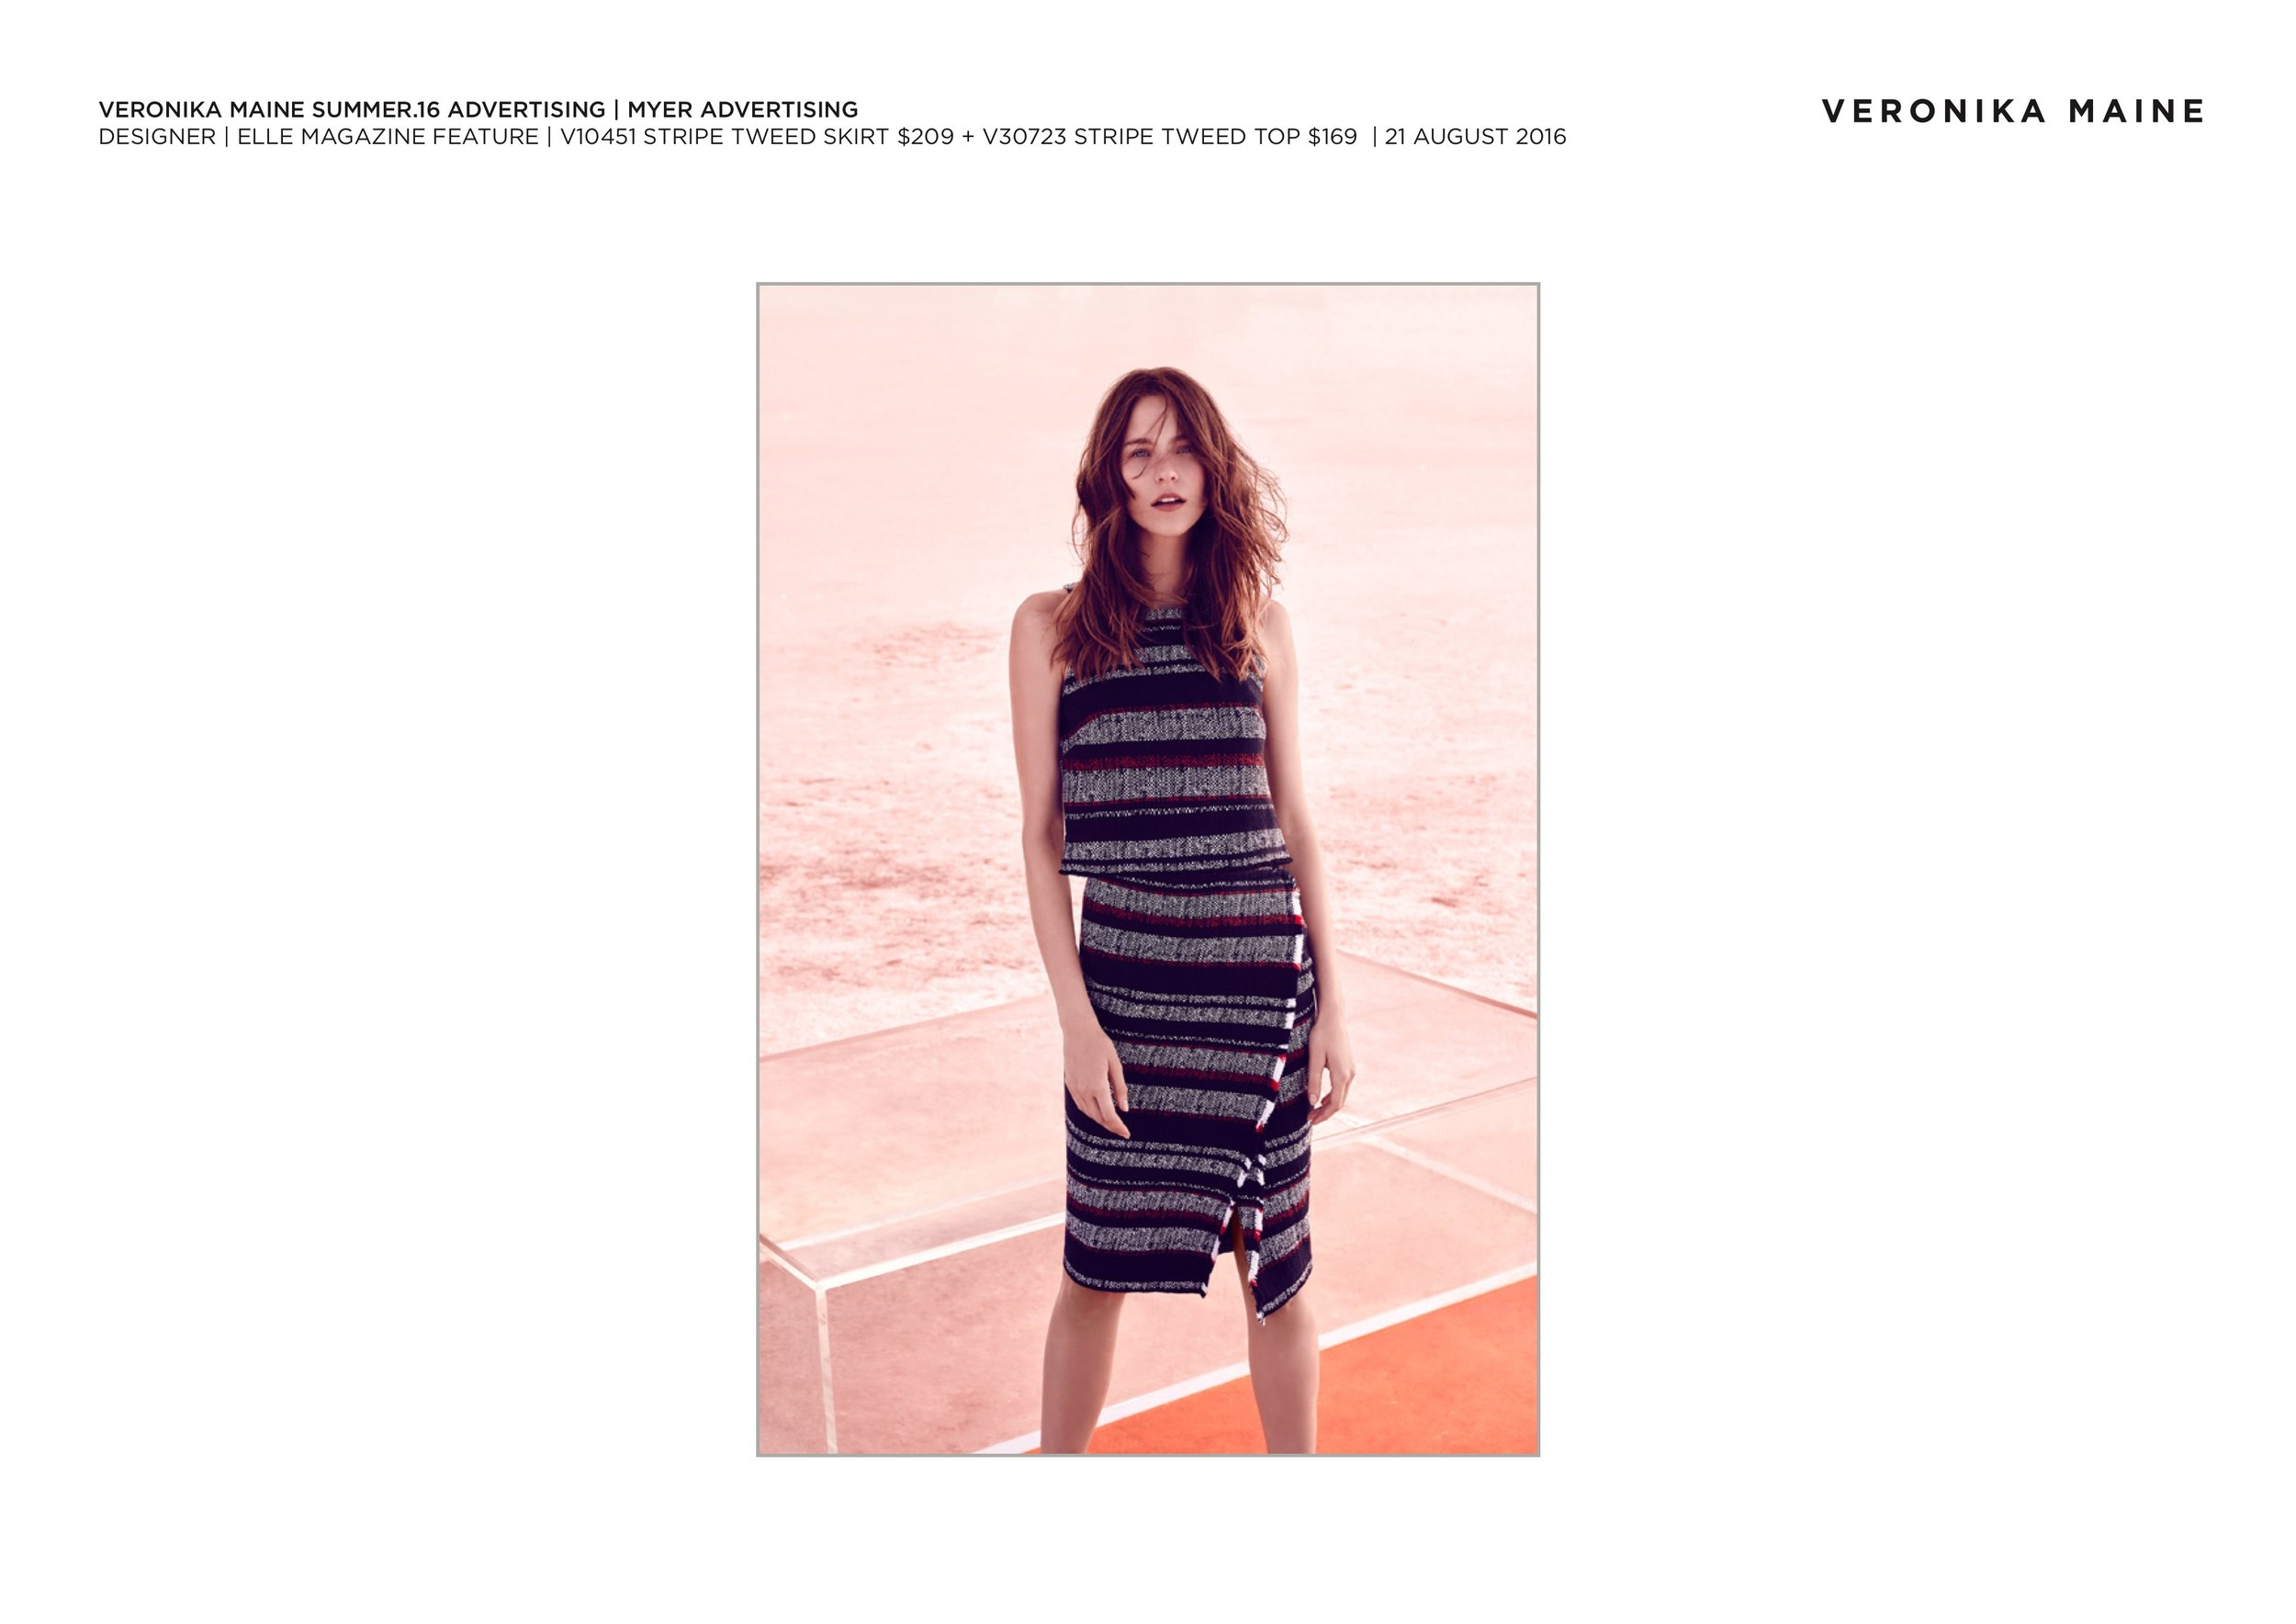 Veronika Maine Summer 2016 I Myer Advertising Continued.jpeg